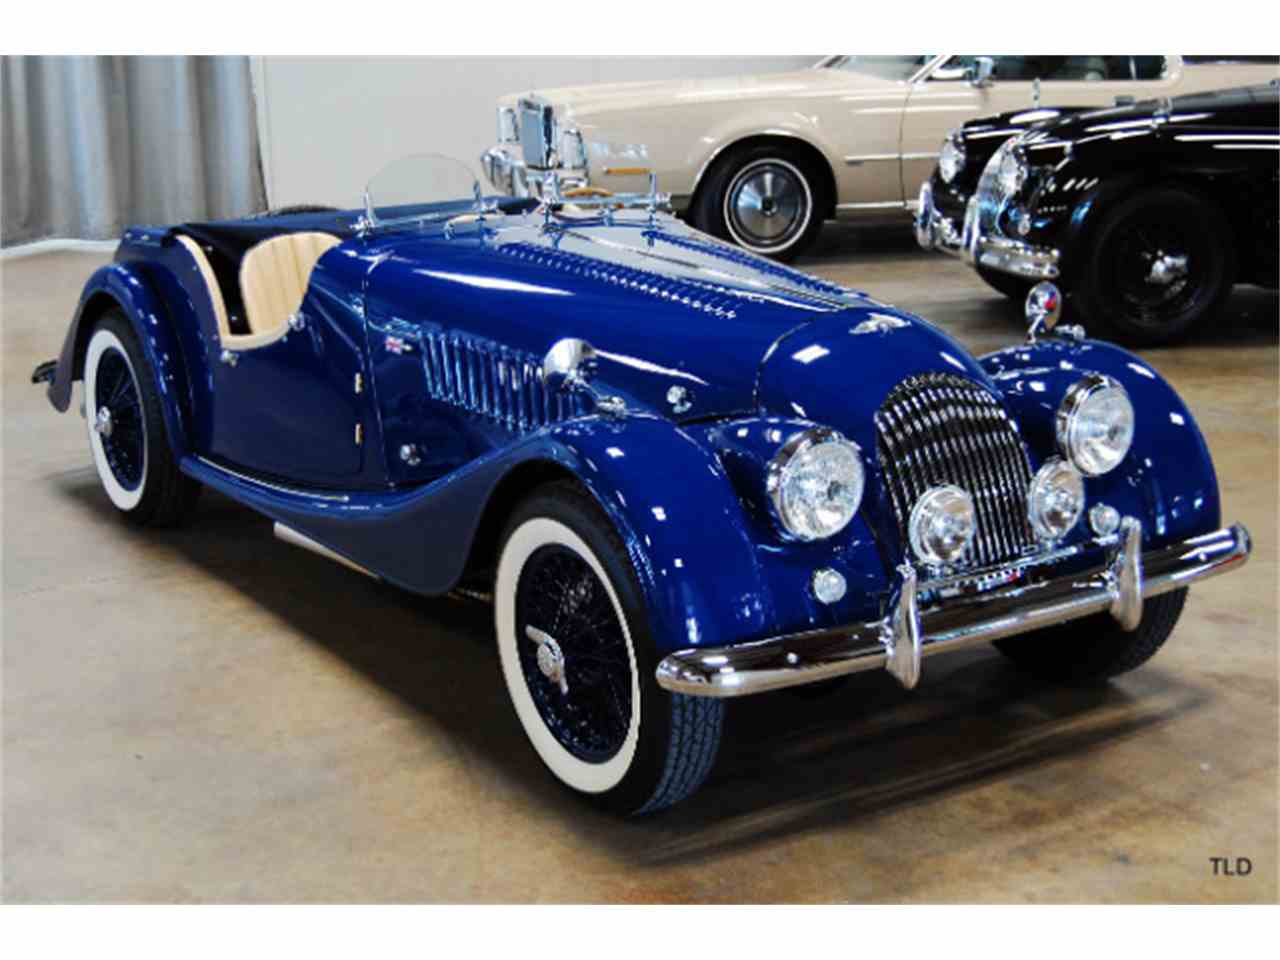 1963 morgan plus 4 997499